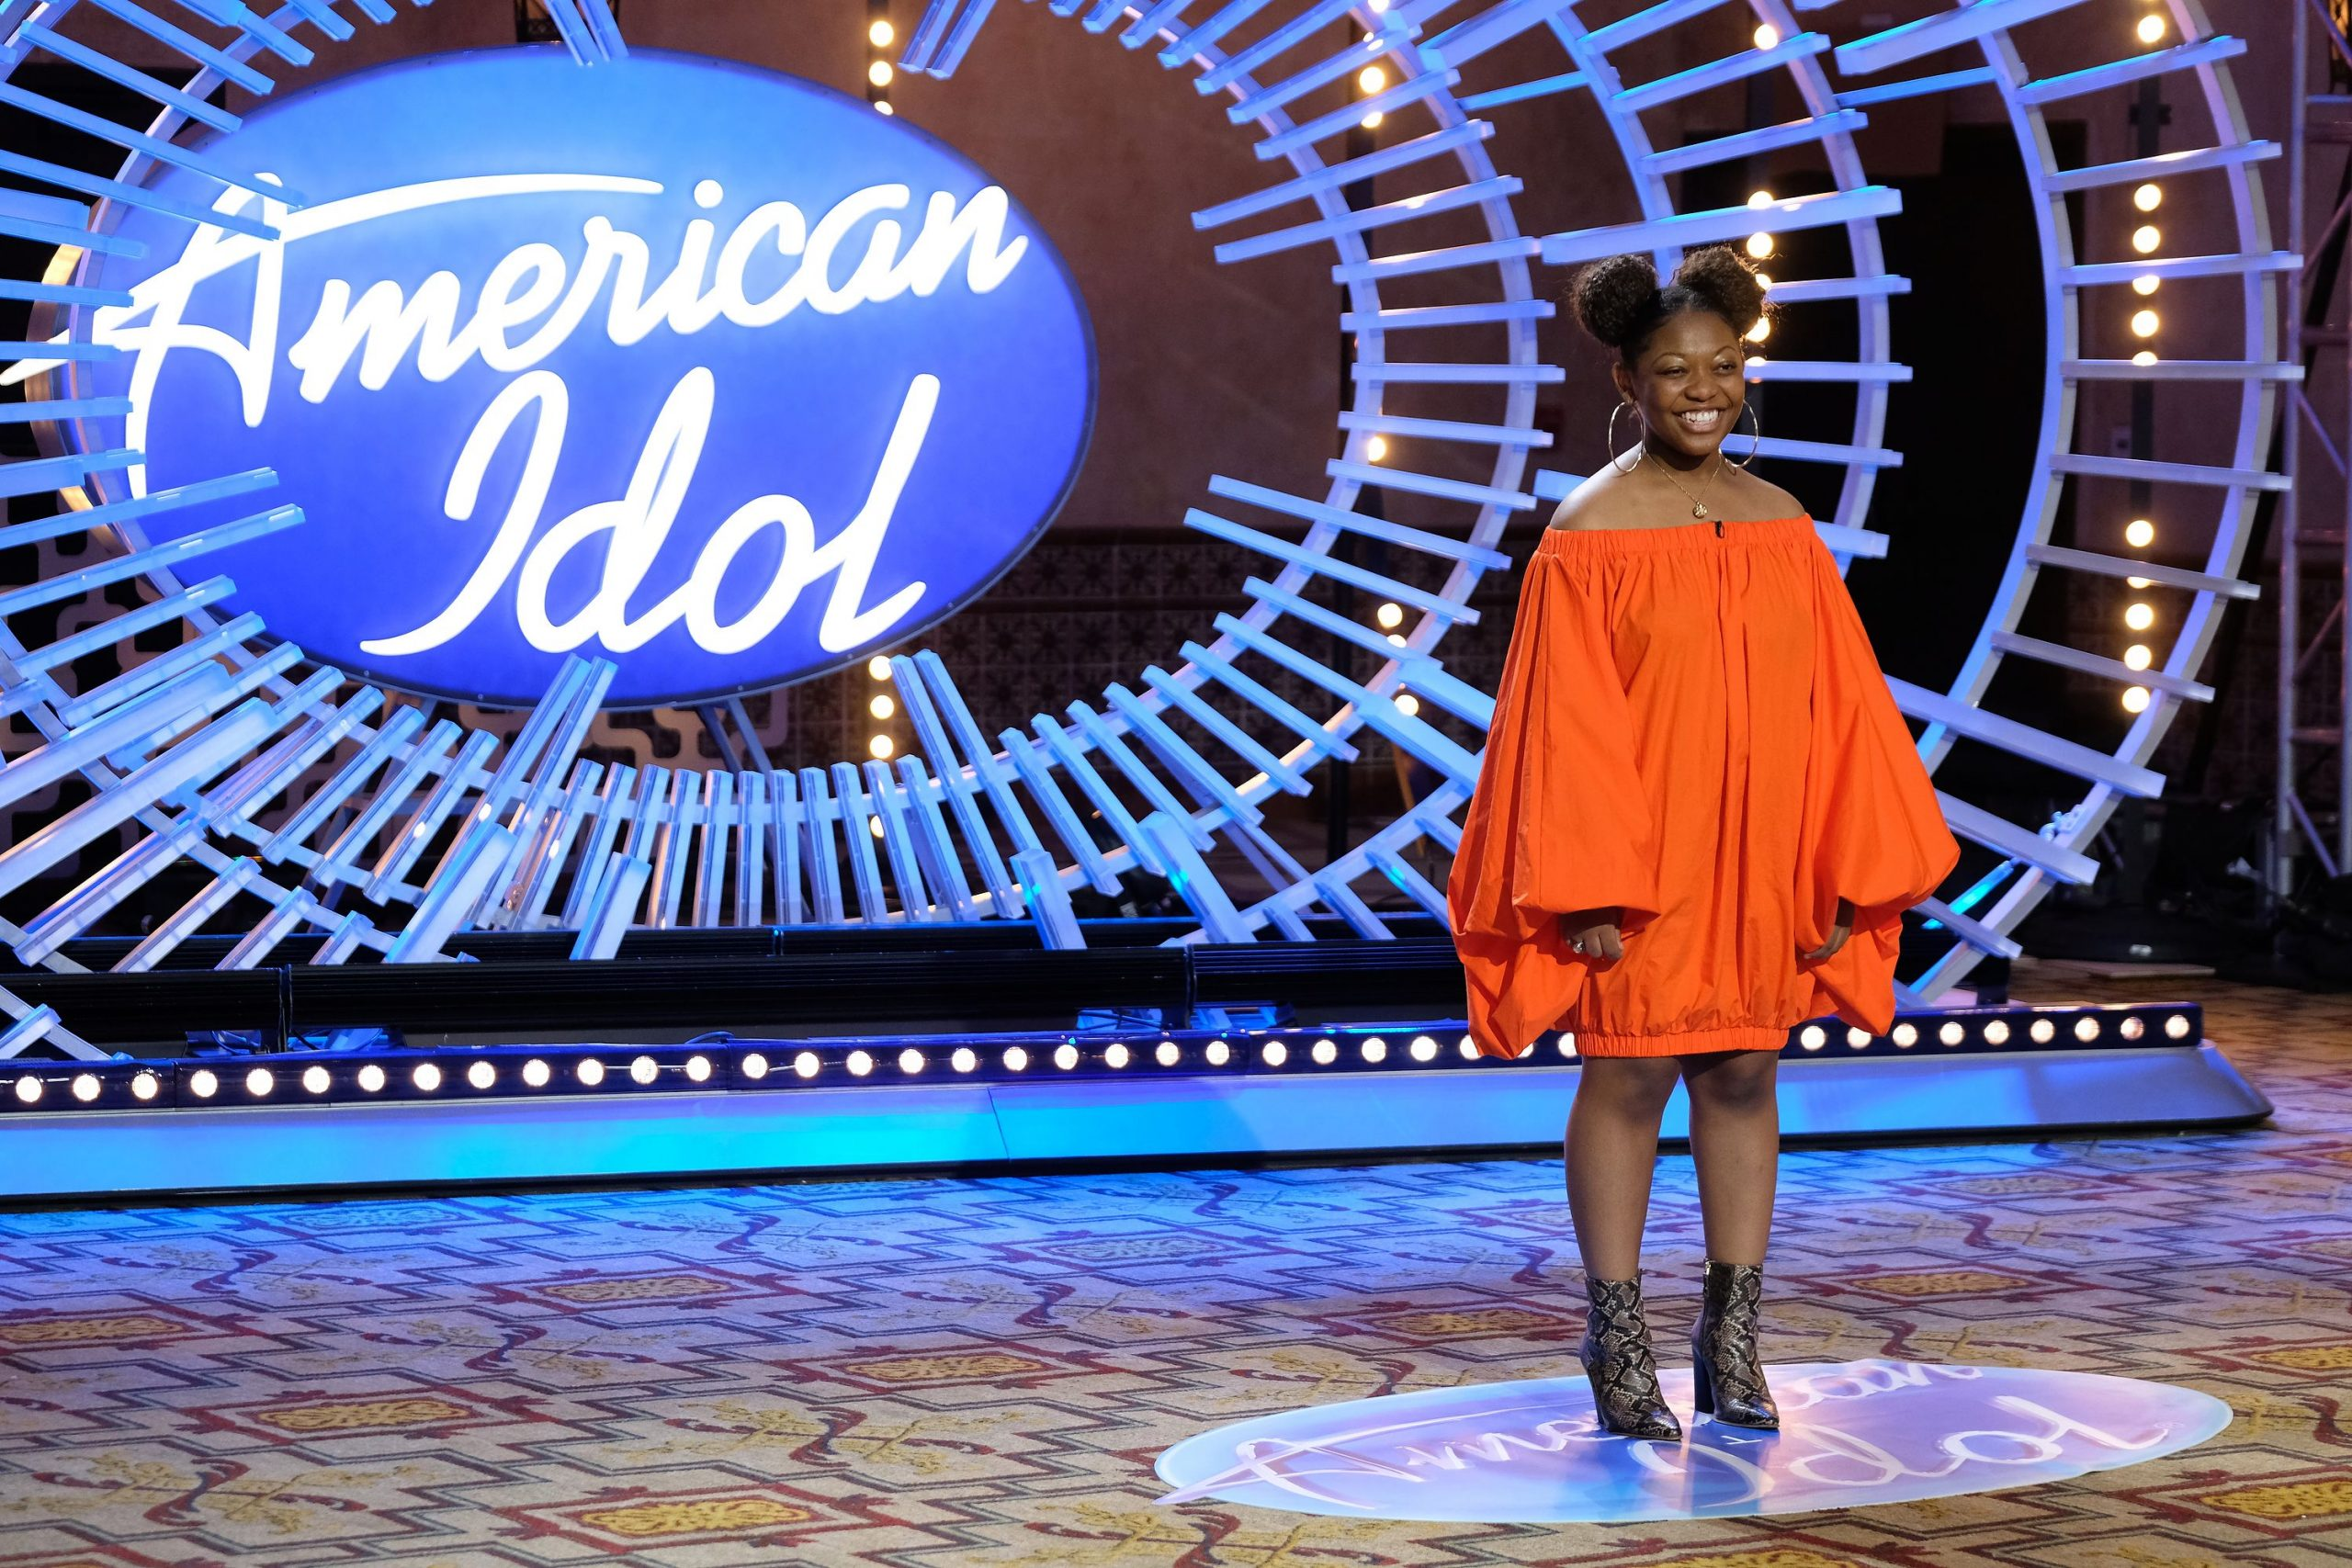 Nia Renee at the American Idol auditions stage